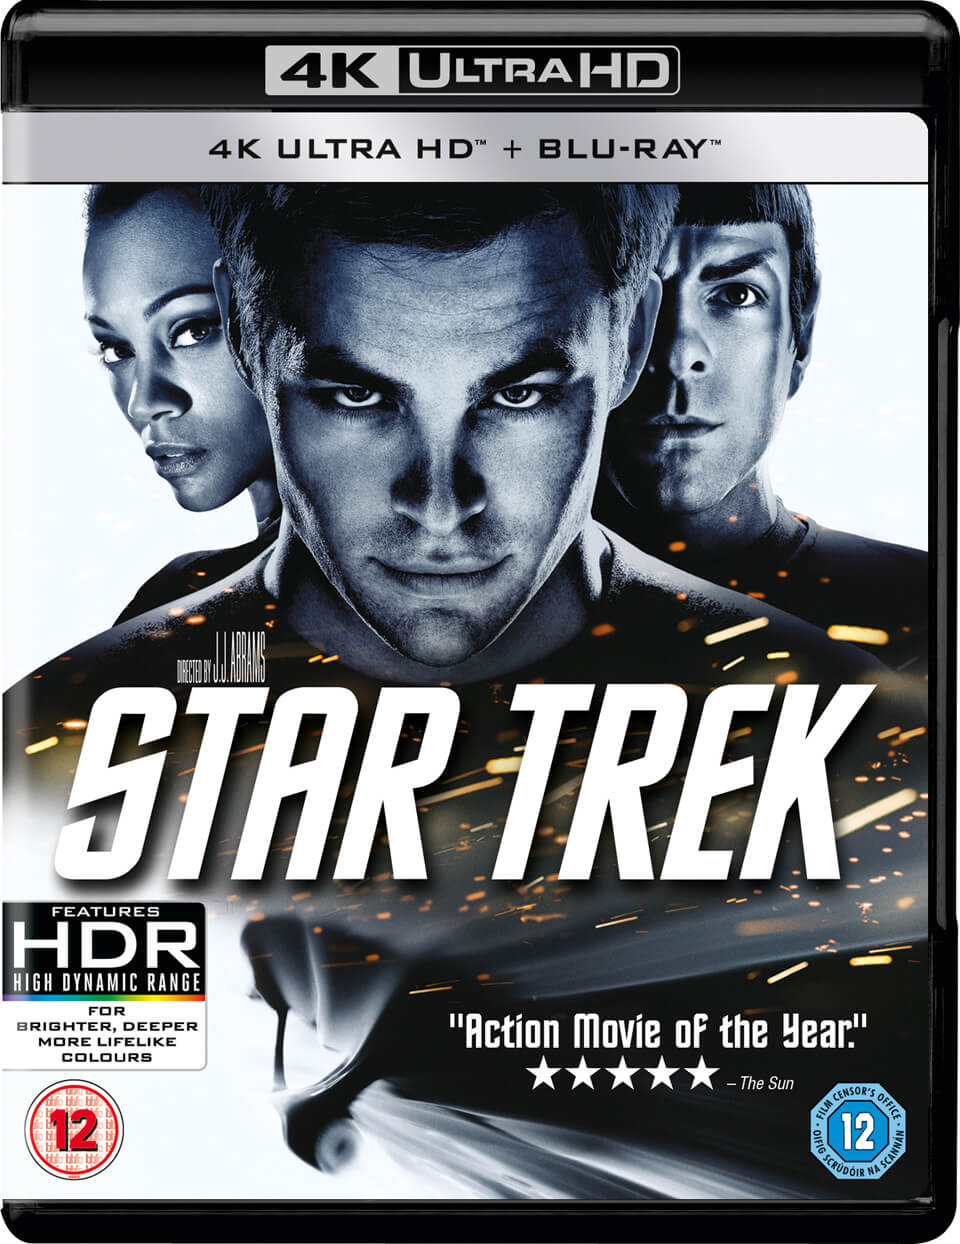 Star Trek - 4K Ultra HD